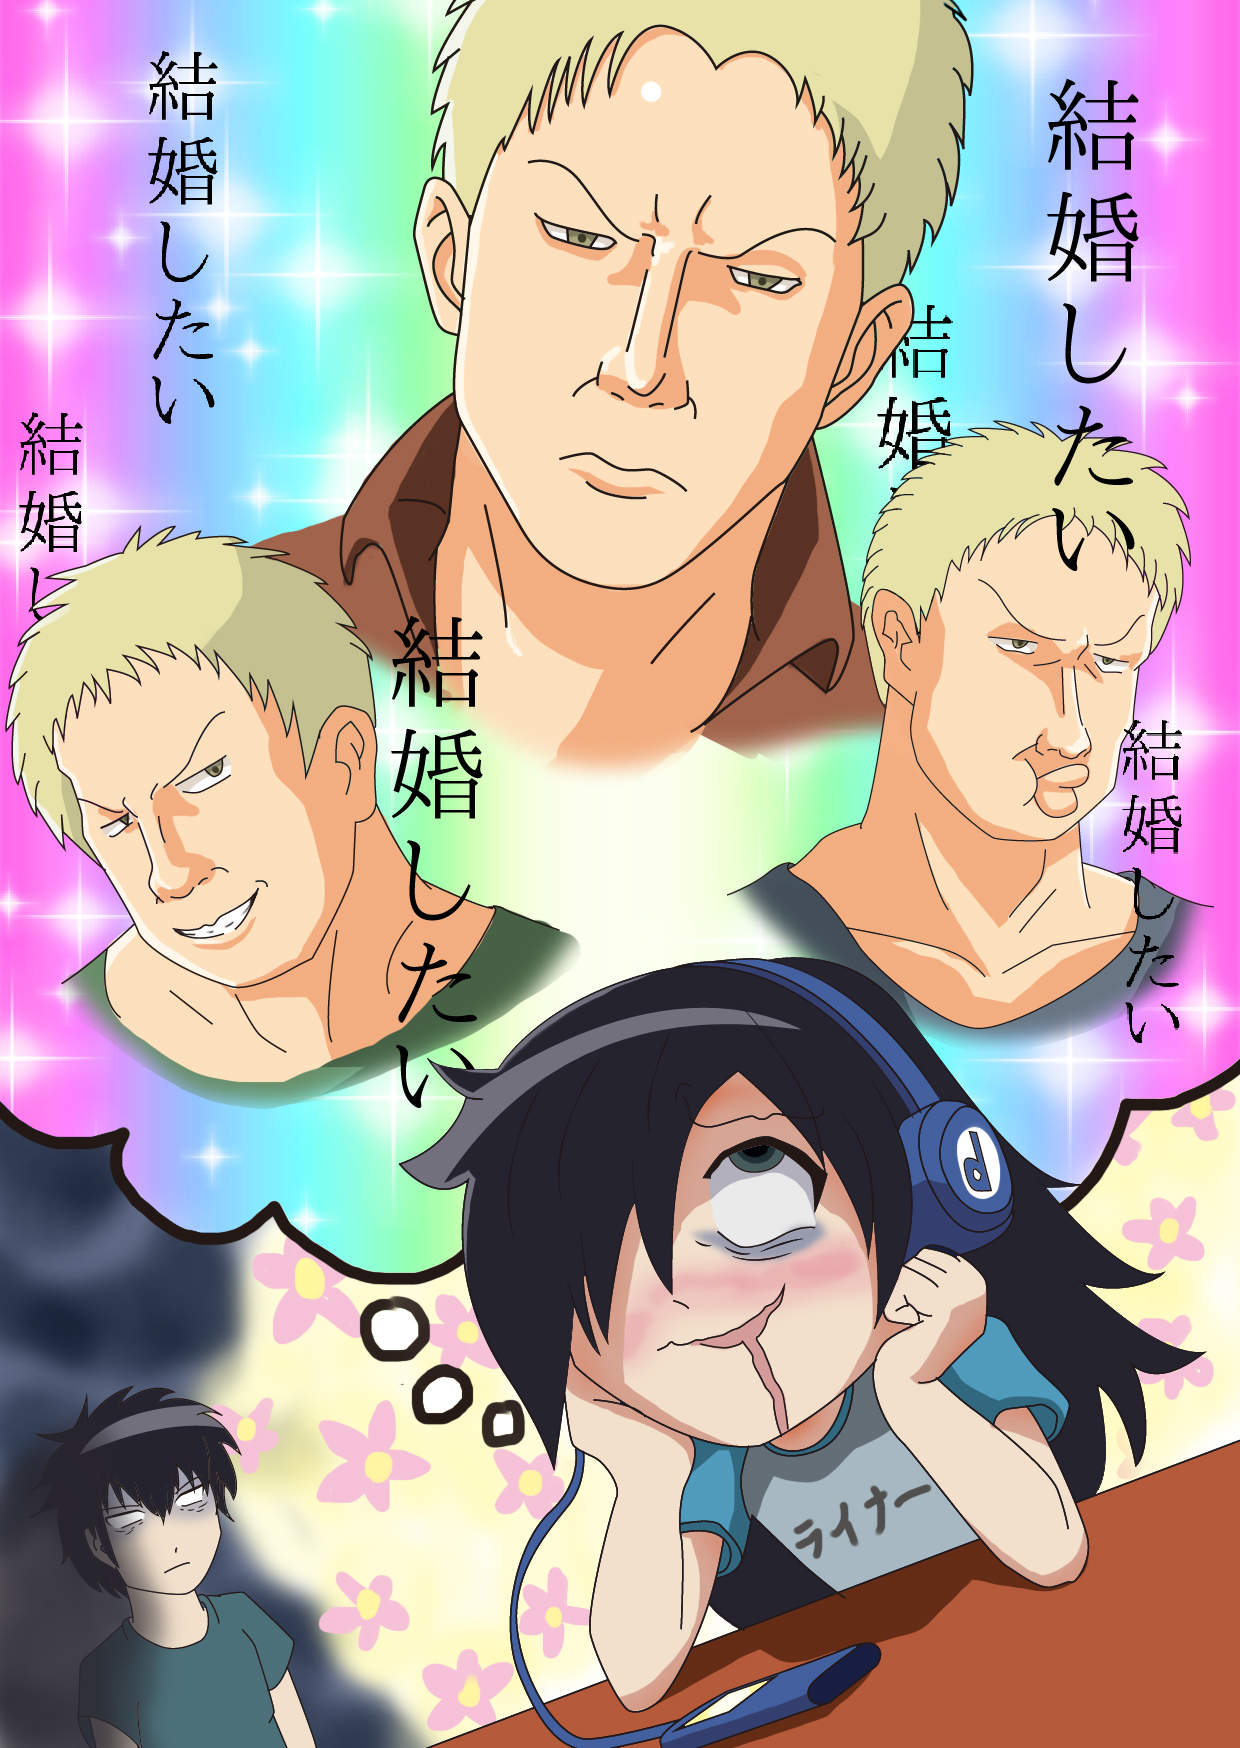 yes tomoko were gay for reiner watamote its not my